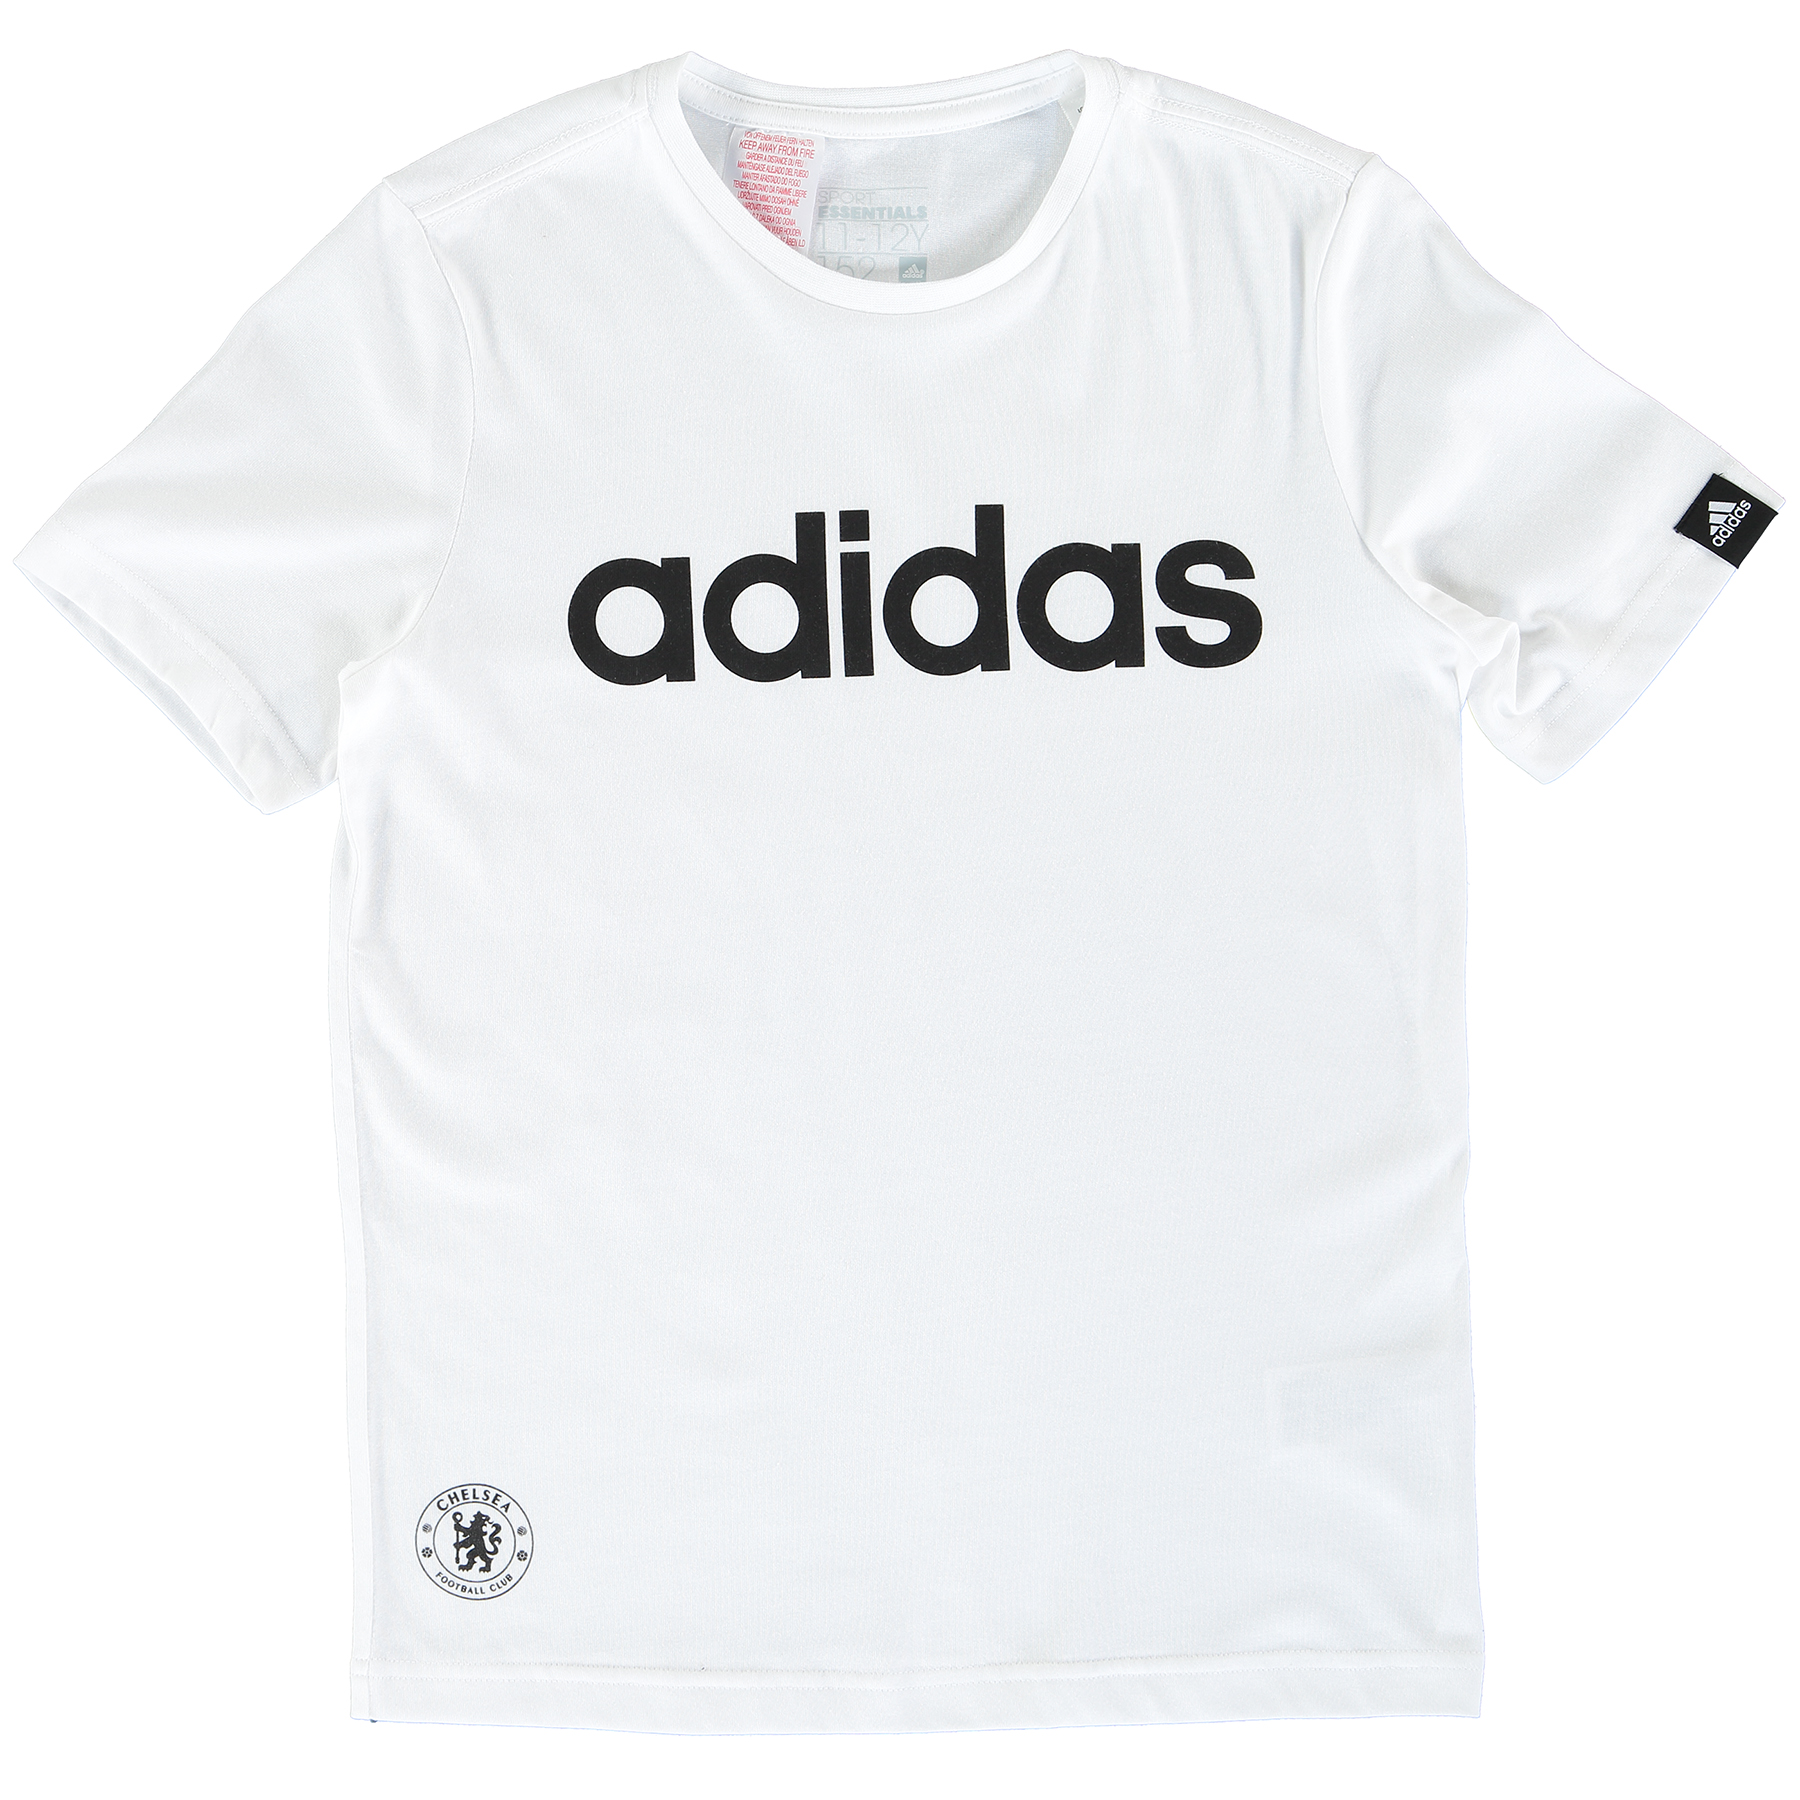 Chelsea Essentials T-Shirt - Boys - White